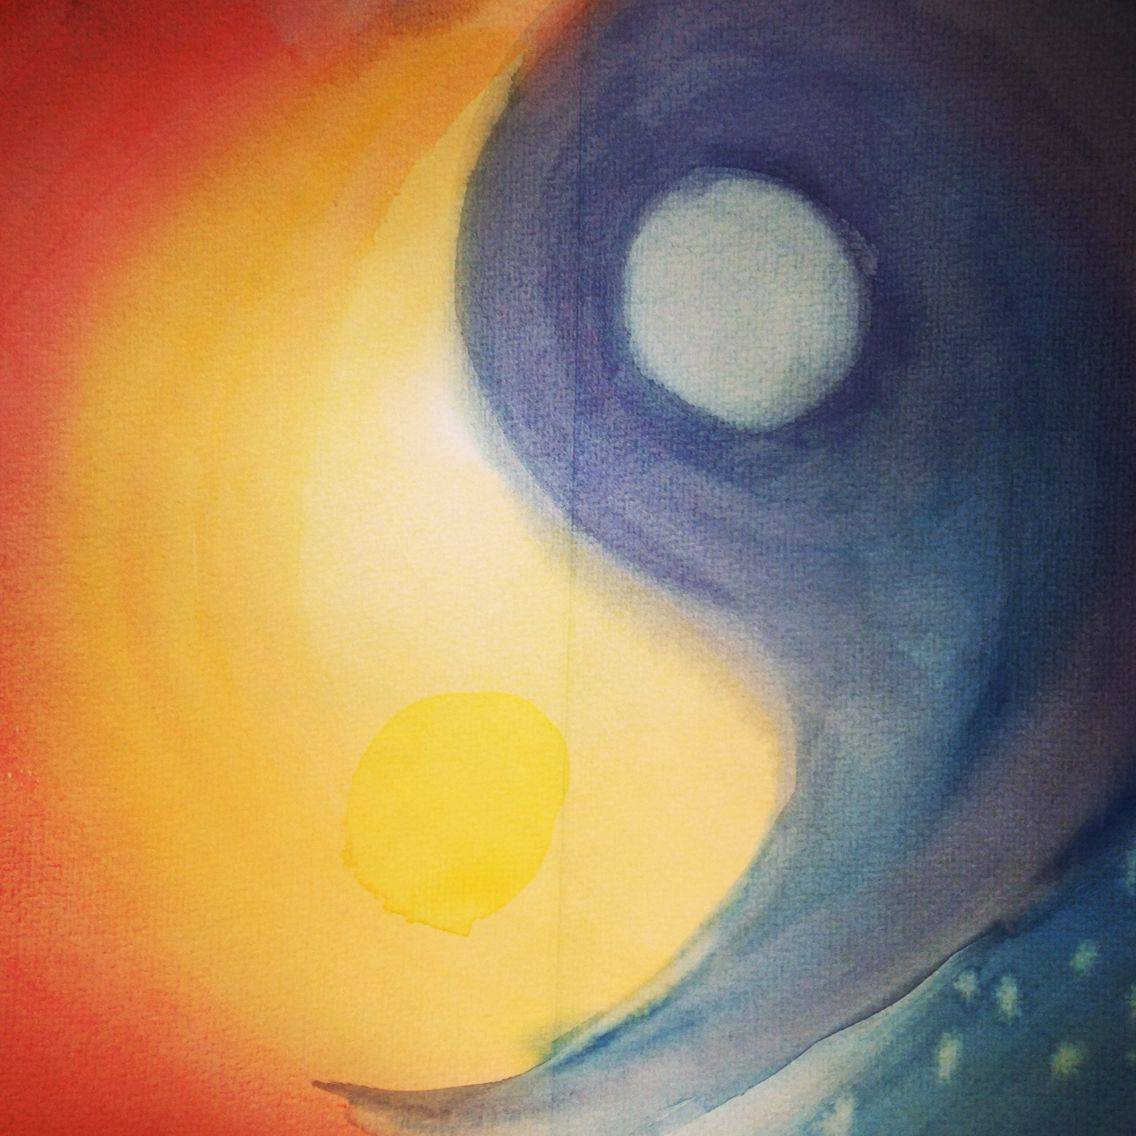 Third grade painting - sun and moon, stars and light, yin and yang. Form  Painting by April Combs Mann. www.apri… | Spring painting, Wet on wet  painting, Third grade